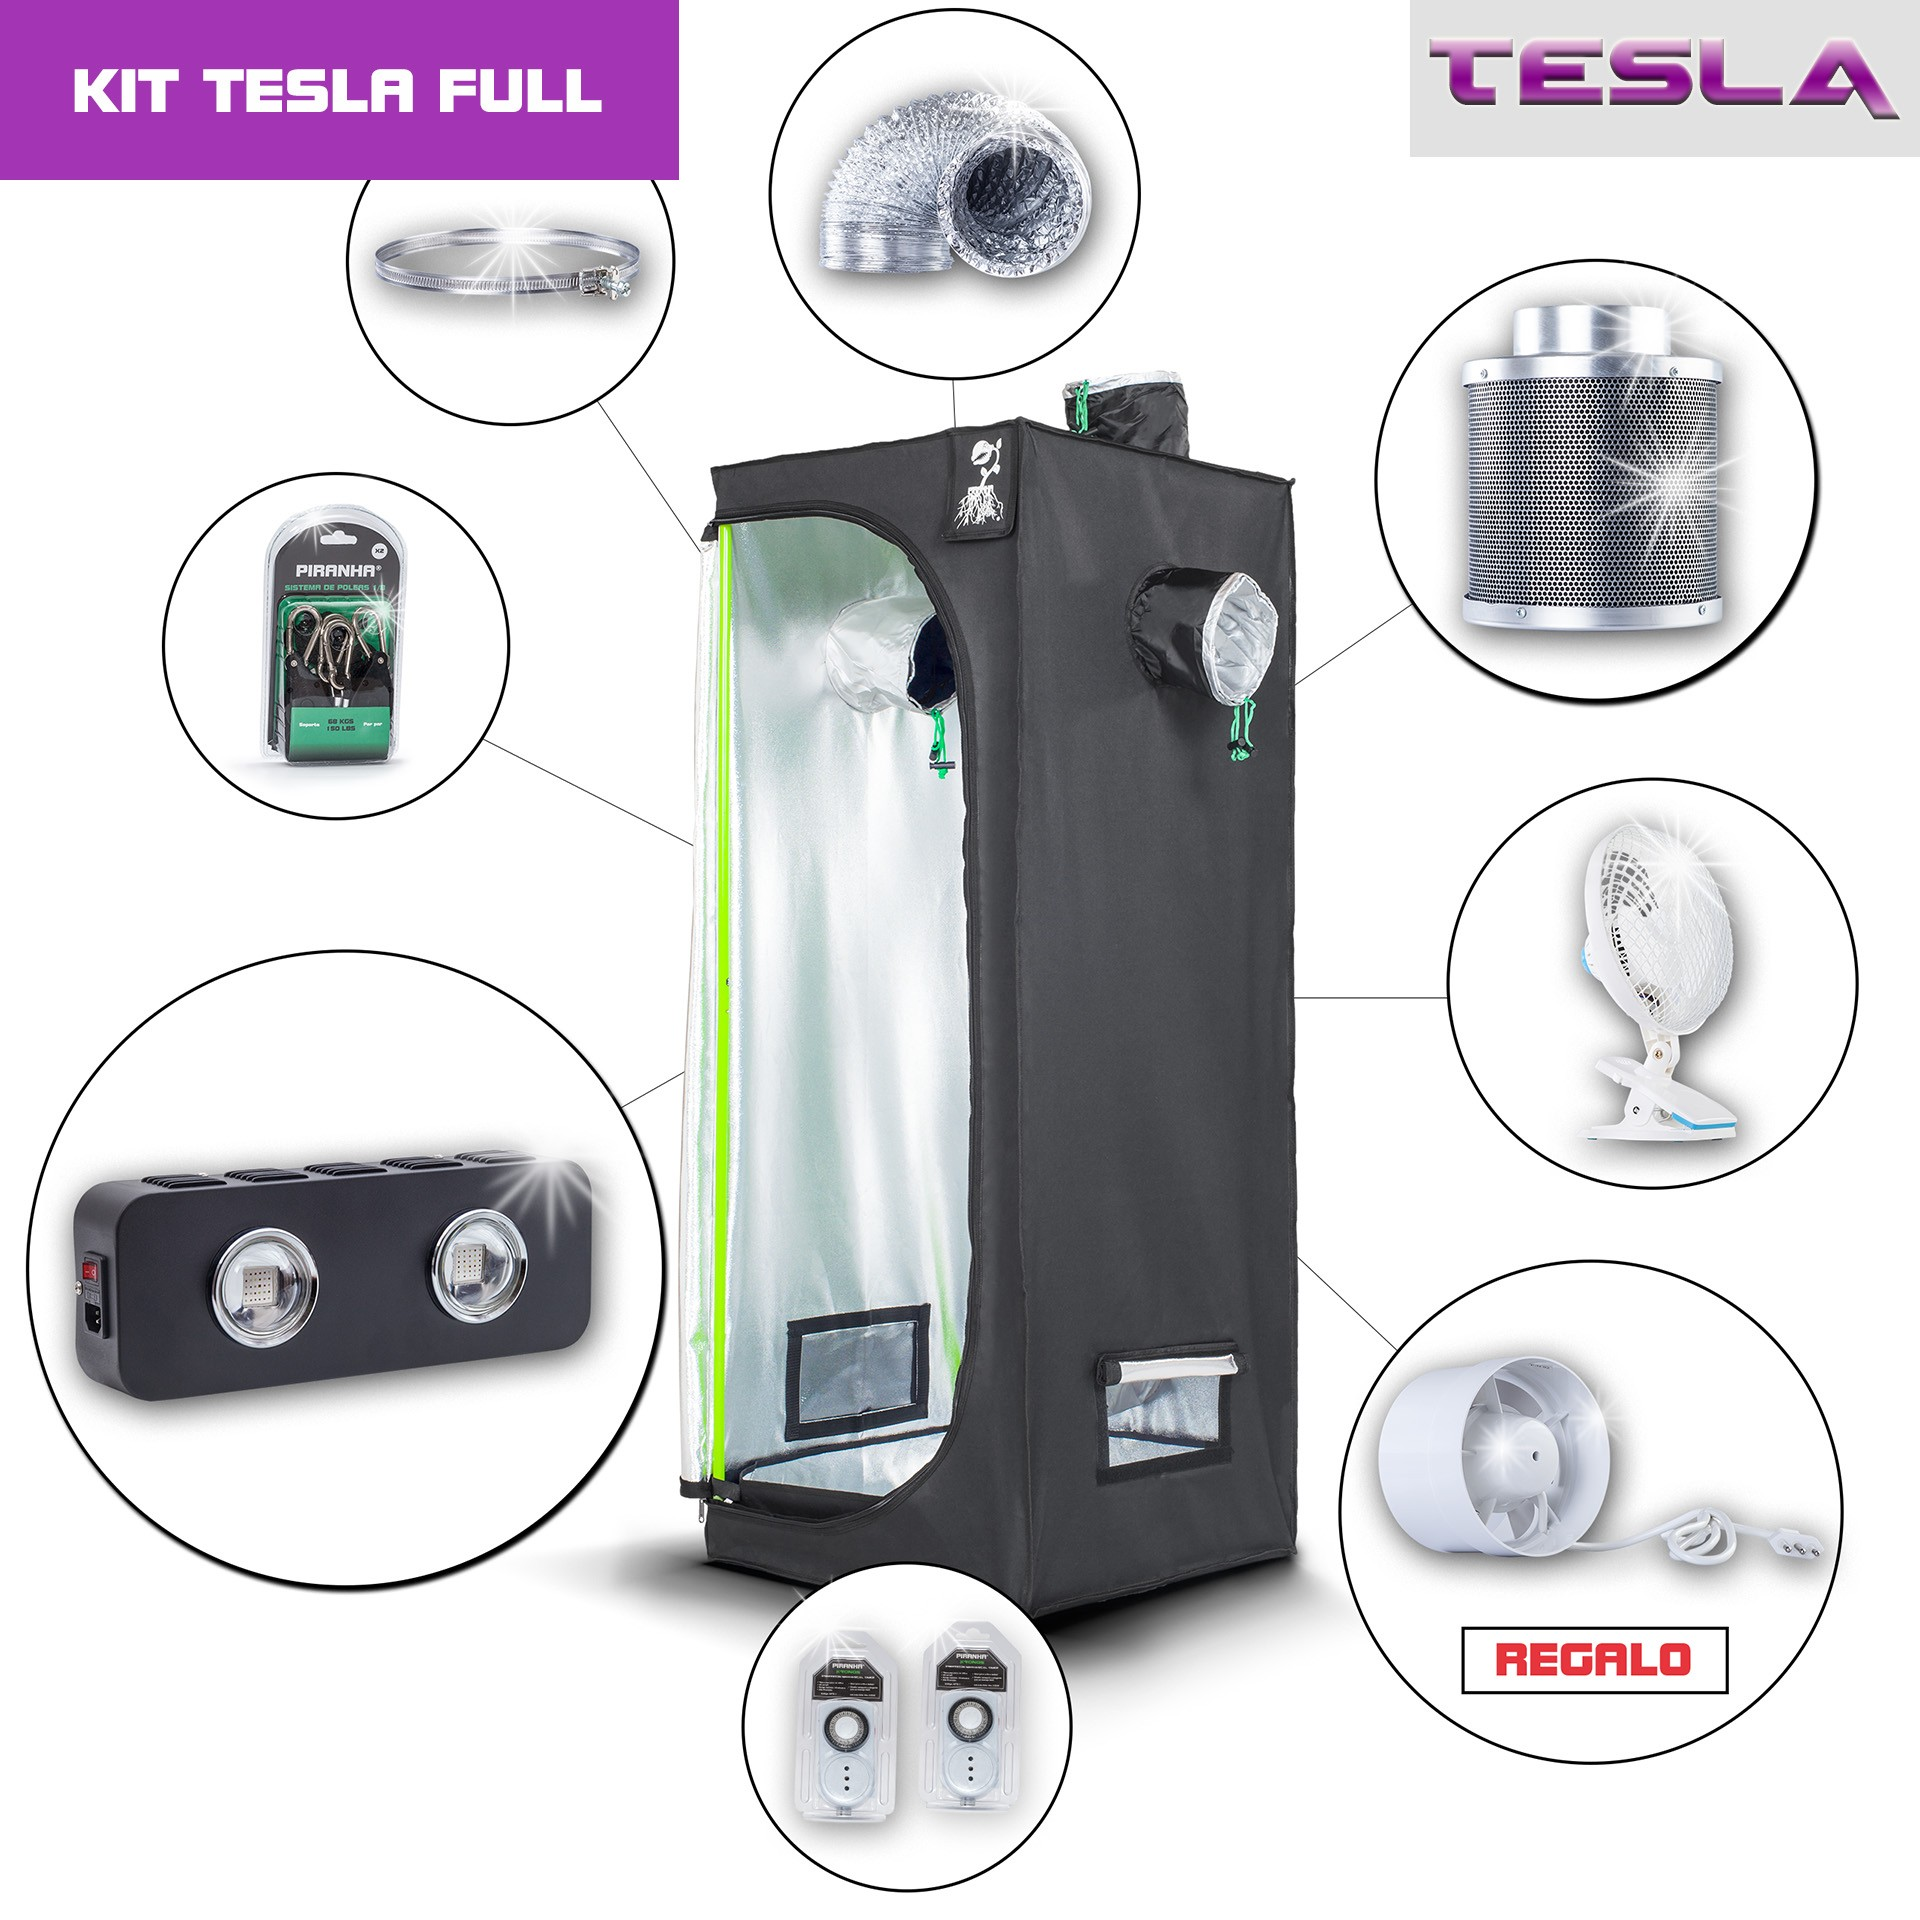 Kit Tesla 80 - T180W Full